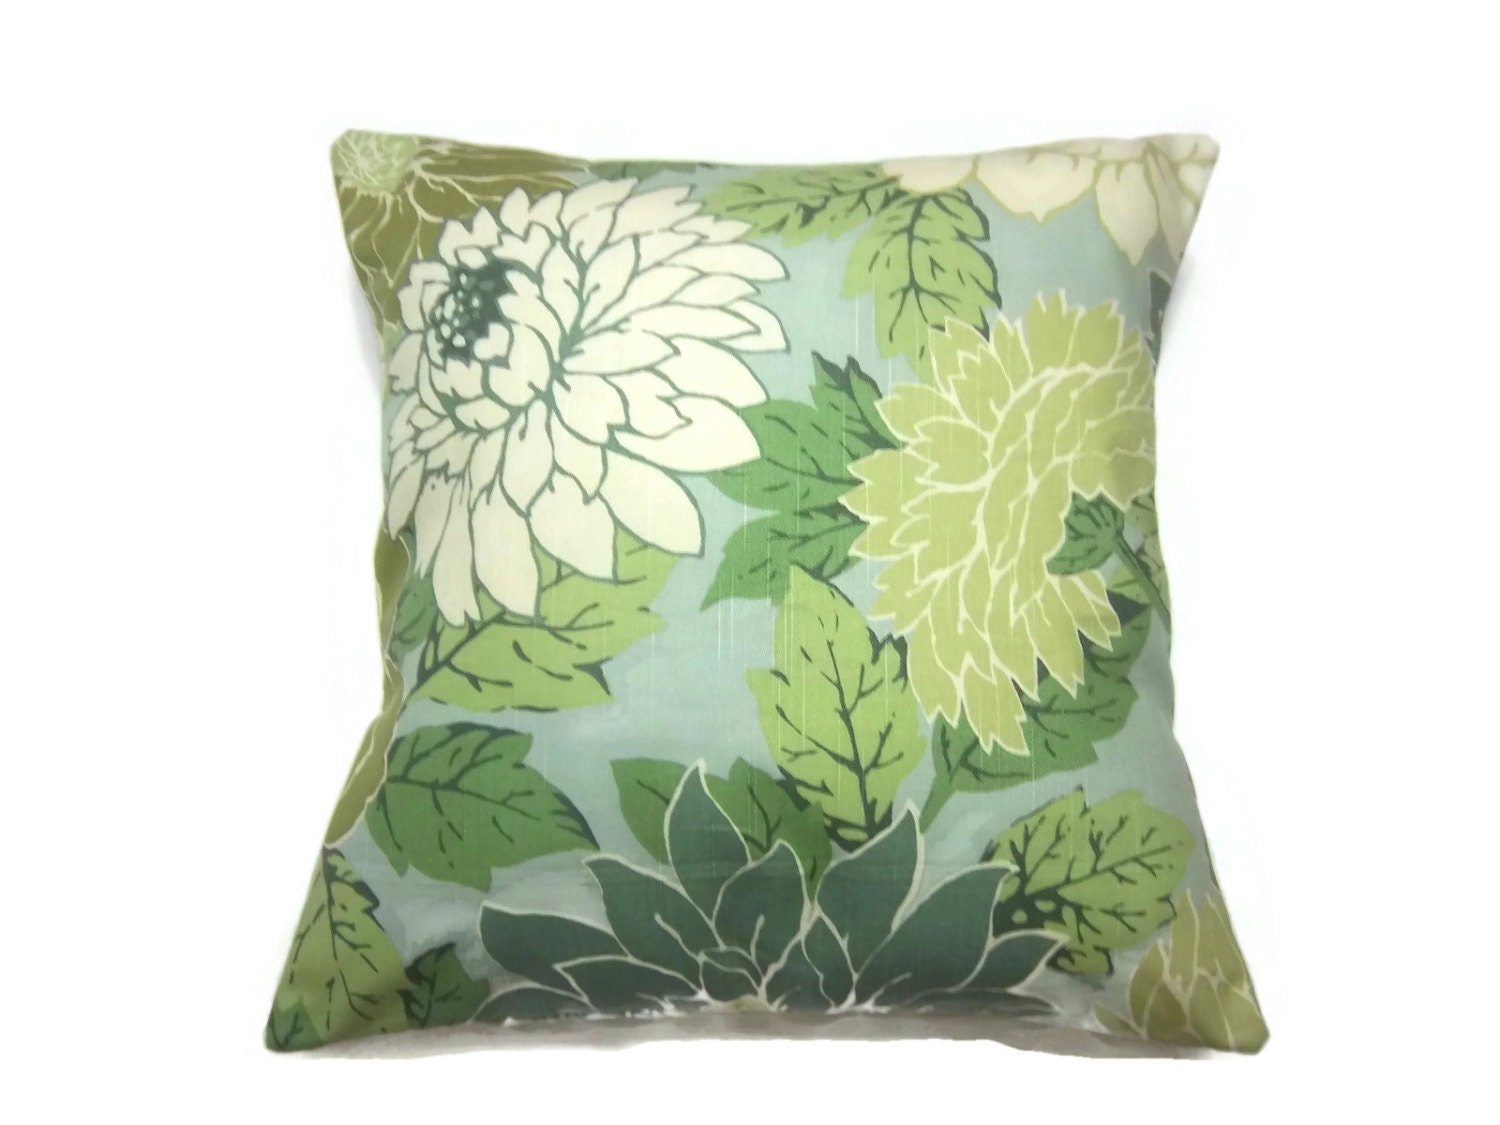 Olive Green Decorative Pillow : Decorative Pillow Cover Mint Green Off White Olive Green